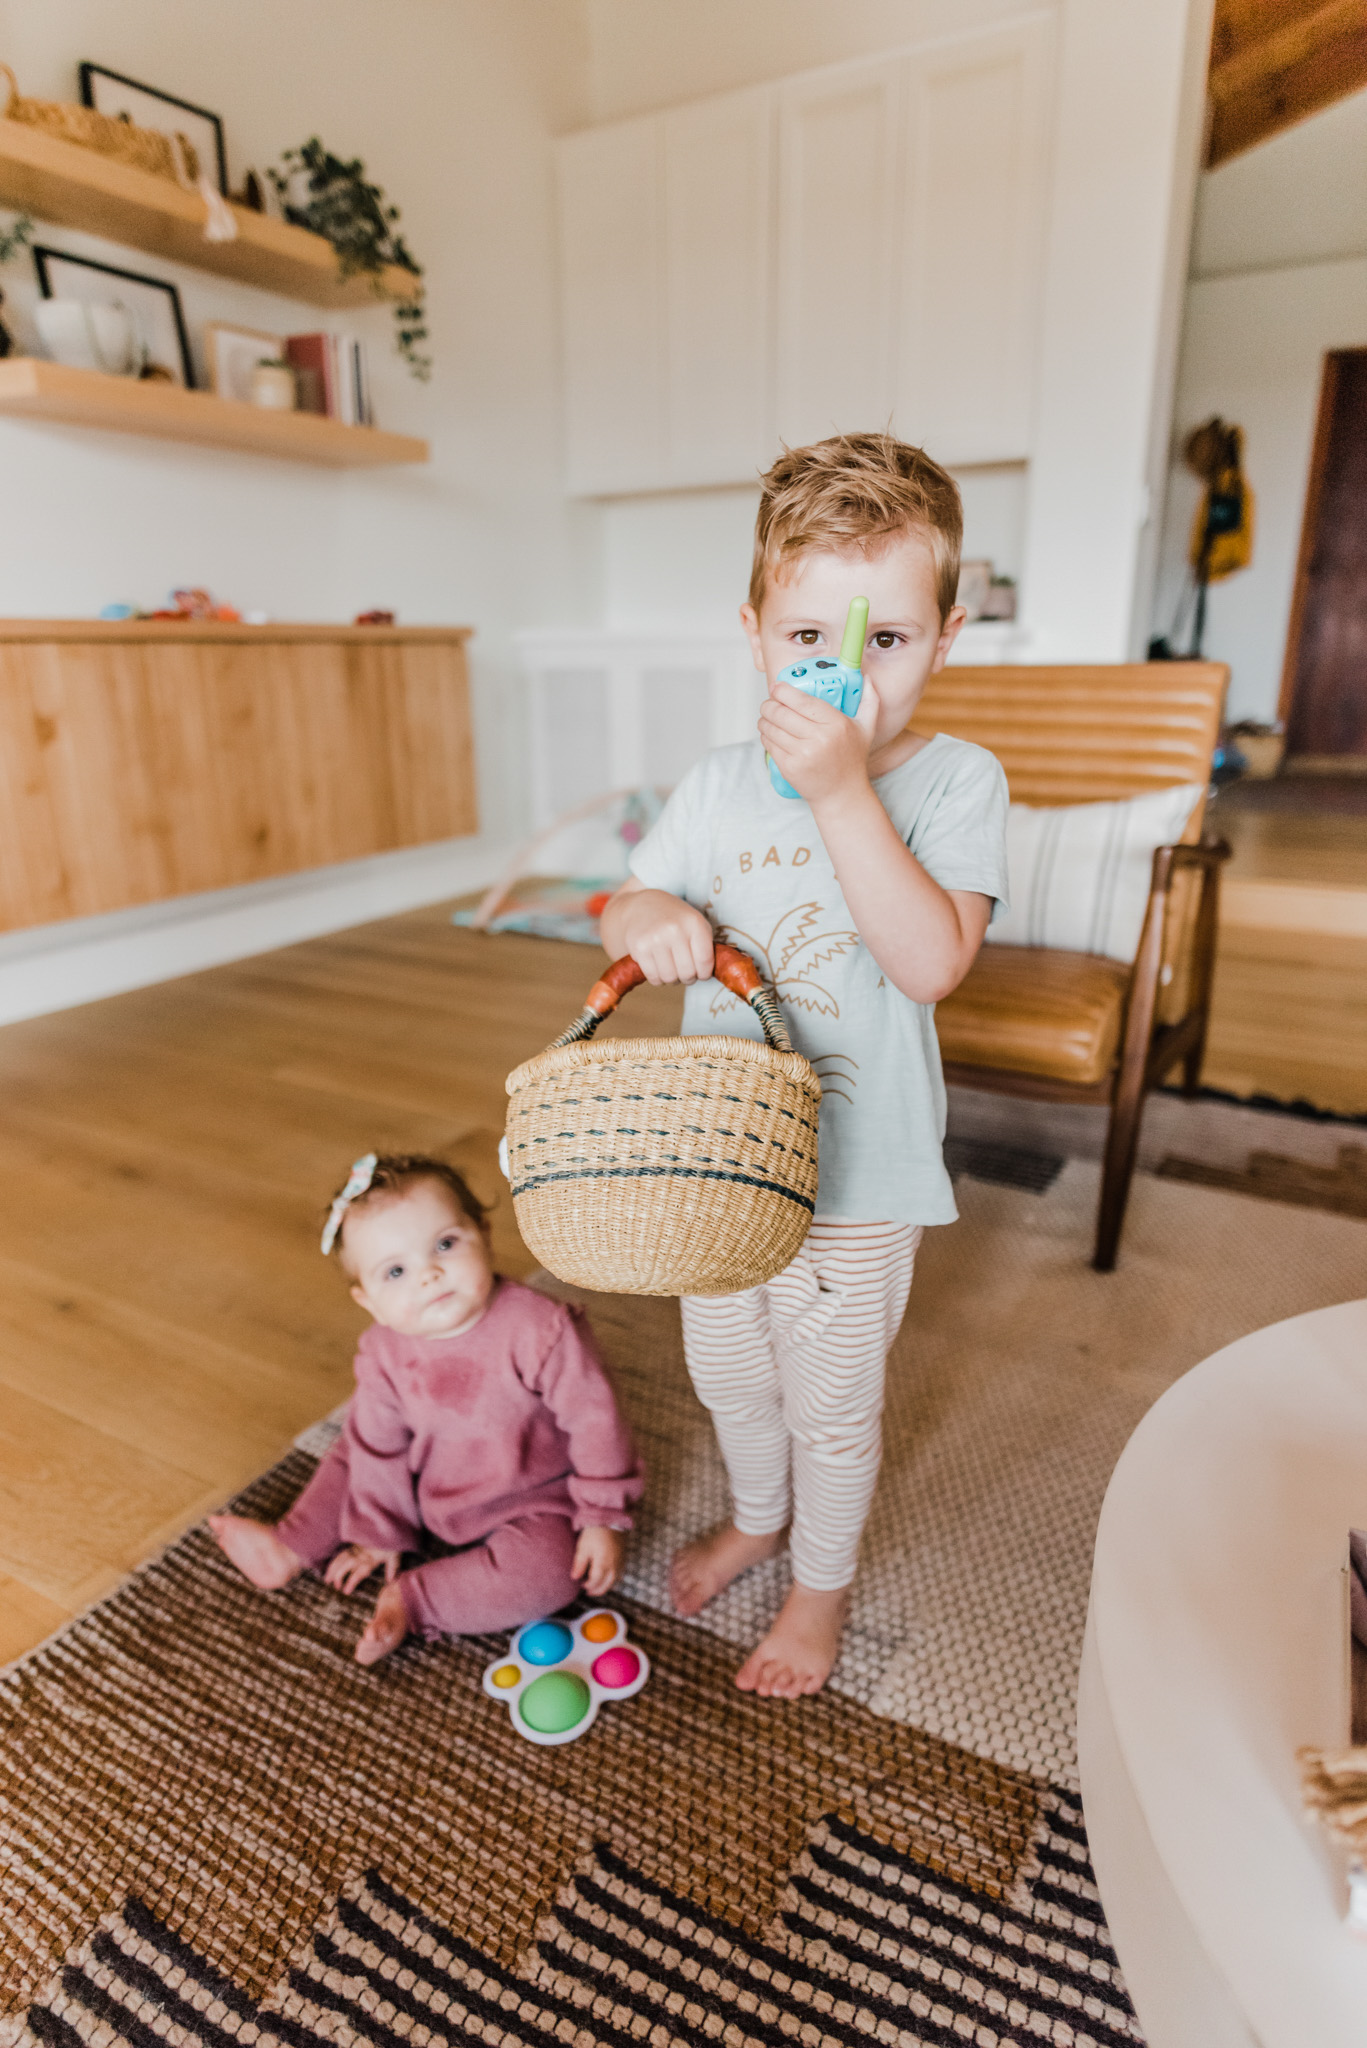 TODDLER EASTER BASKET GIFT IDEAS featured by top San Diego lifestyle blog, Navy Grace | Easter Basket Ideas for Toddlers by popular San Diego lifestyle blog, Navy Grace: image of a little boy holding a woven Easter basket in on hand a walkie talking in another.